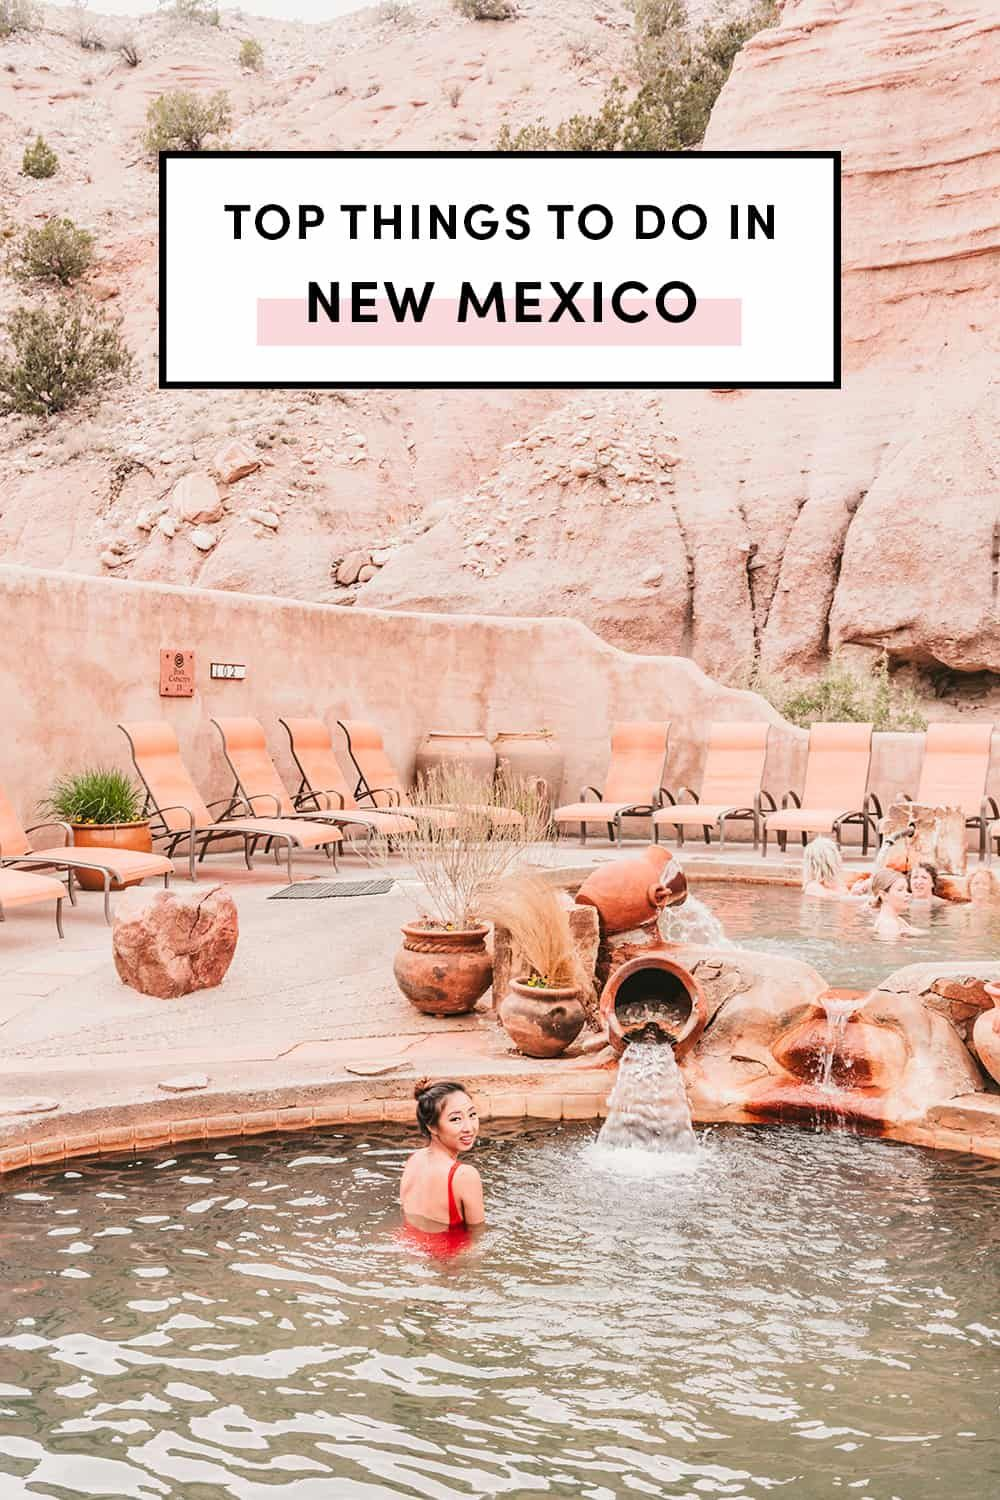 Top Things To Do In New Mexico by A Taste Of Koko. Explore New Mexico in 2019 with this ultimate travel guide! #newmexico #newmexicotravel #explorenewmexico